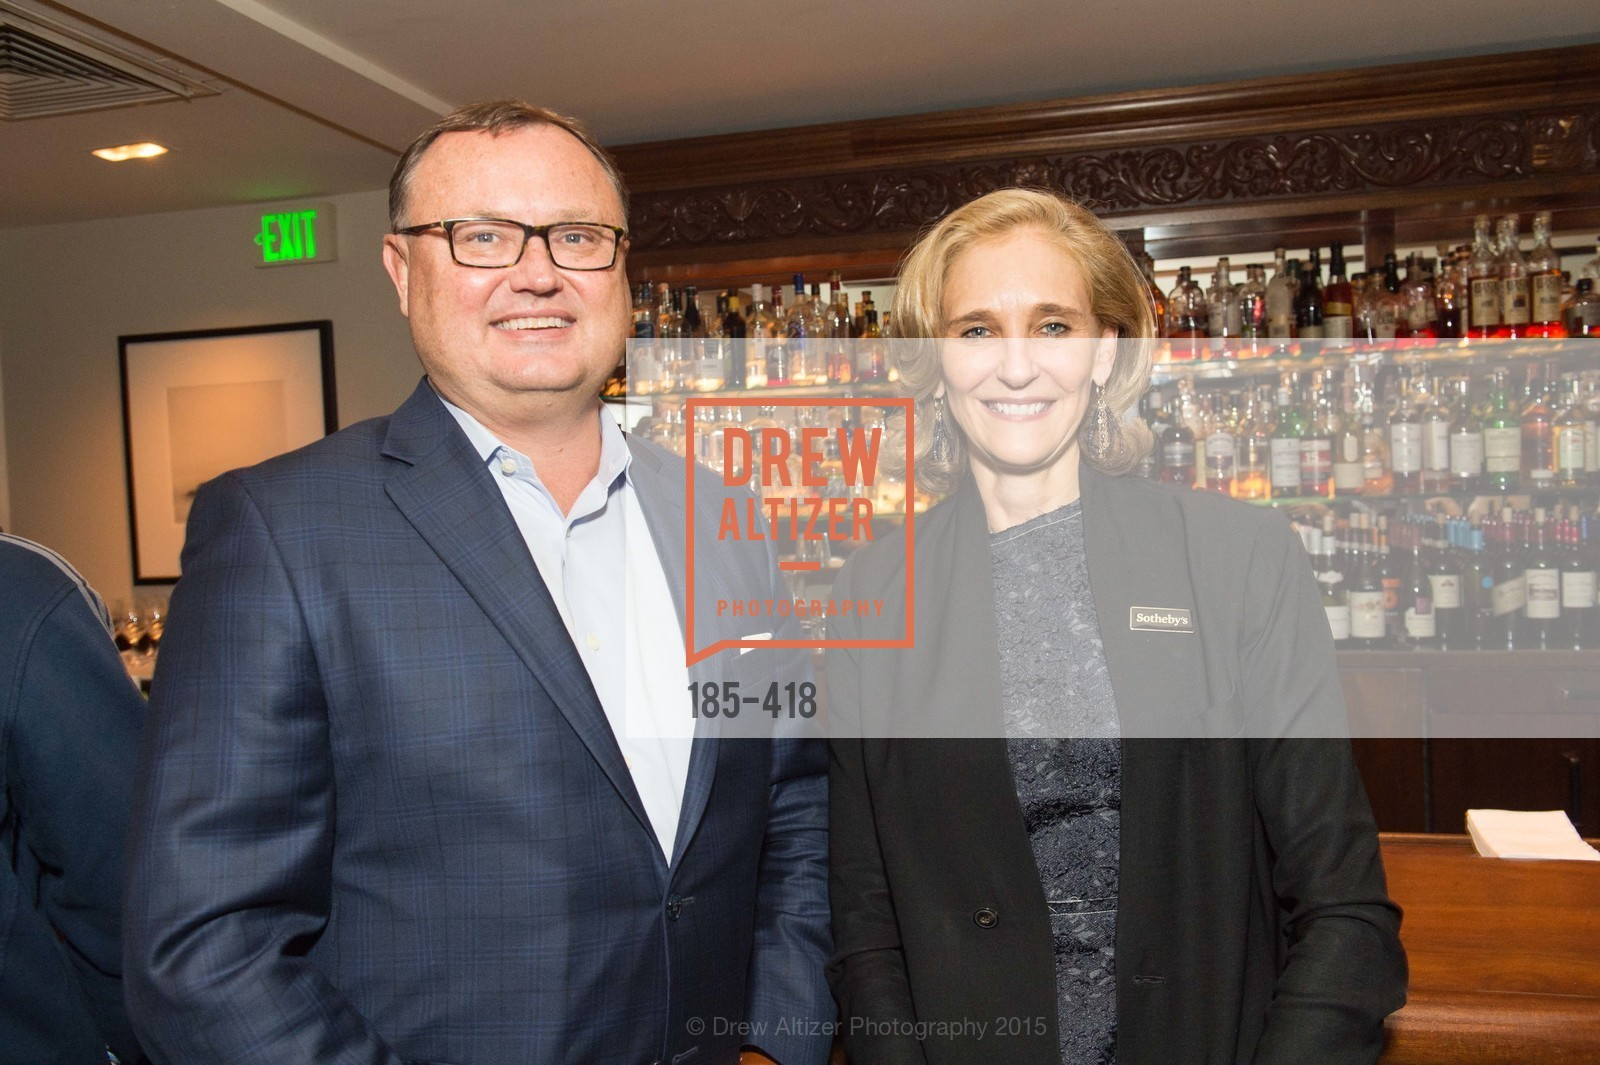 Chuck Strickler, Jennifer Biederbeck, Artsy and Sotheby's Village Pub Dinner, Village Pub, October 27th, 2015,Drew Altizer, Drew Altizer Photography, full-service agency, private events, San Francisco photographer, photographer california